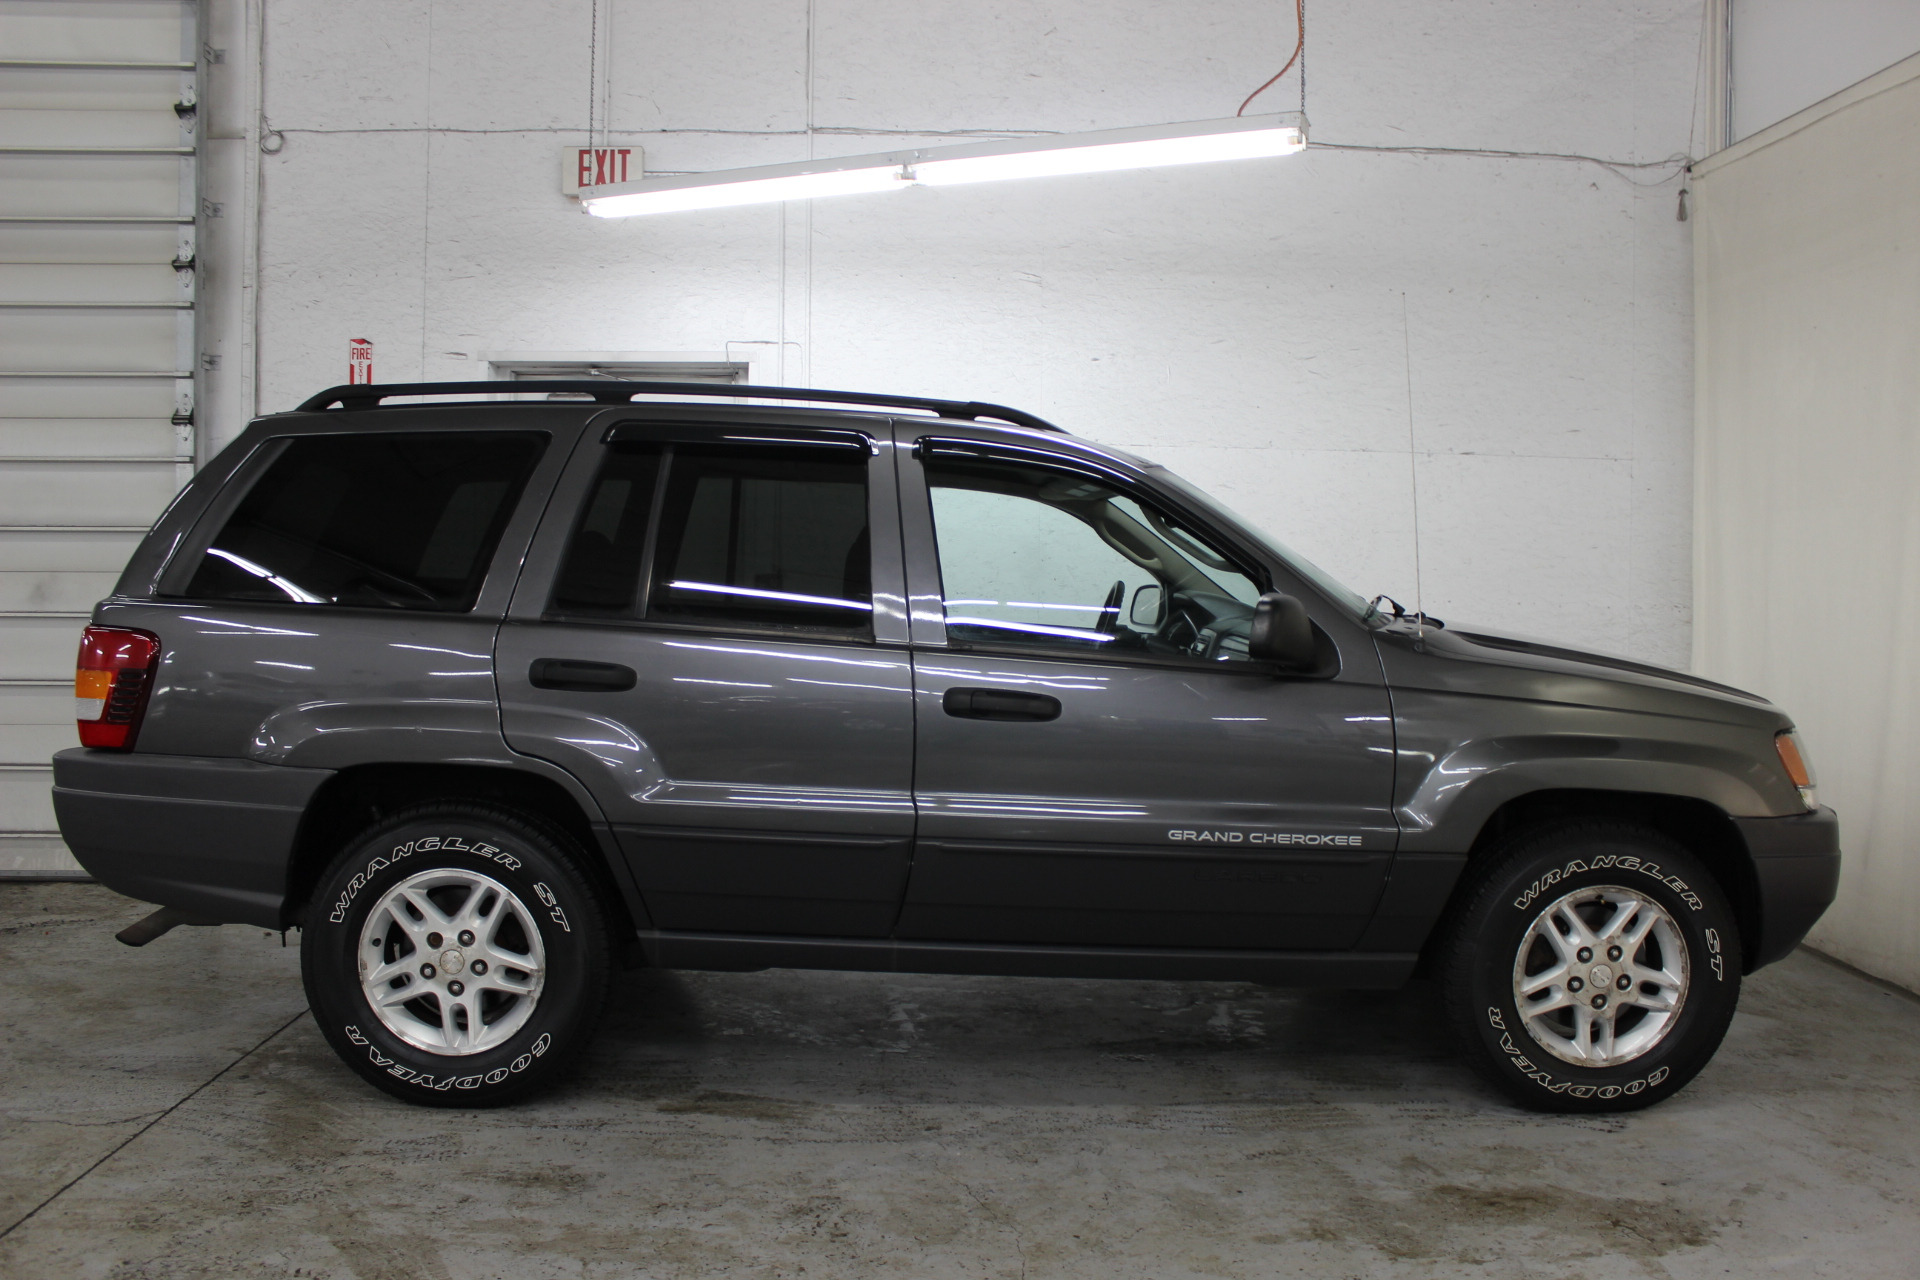 2004 jeep grand cherokee special edition biscayne auto sales pre owned dealership ontario ny. Black Bedroom Furniture Sets. Home Design Ideas